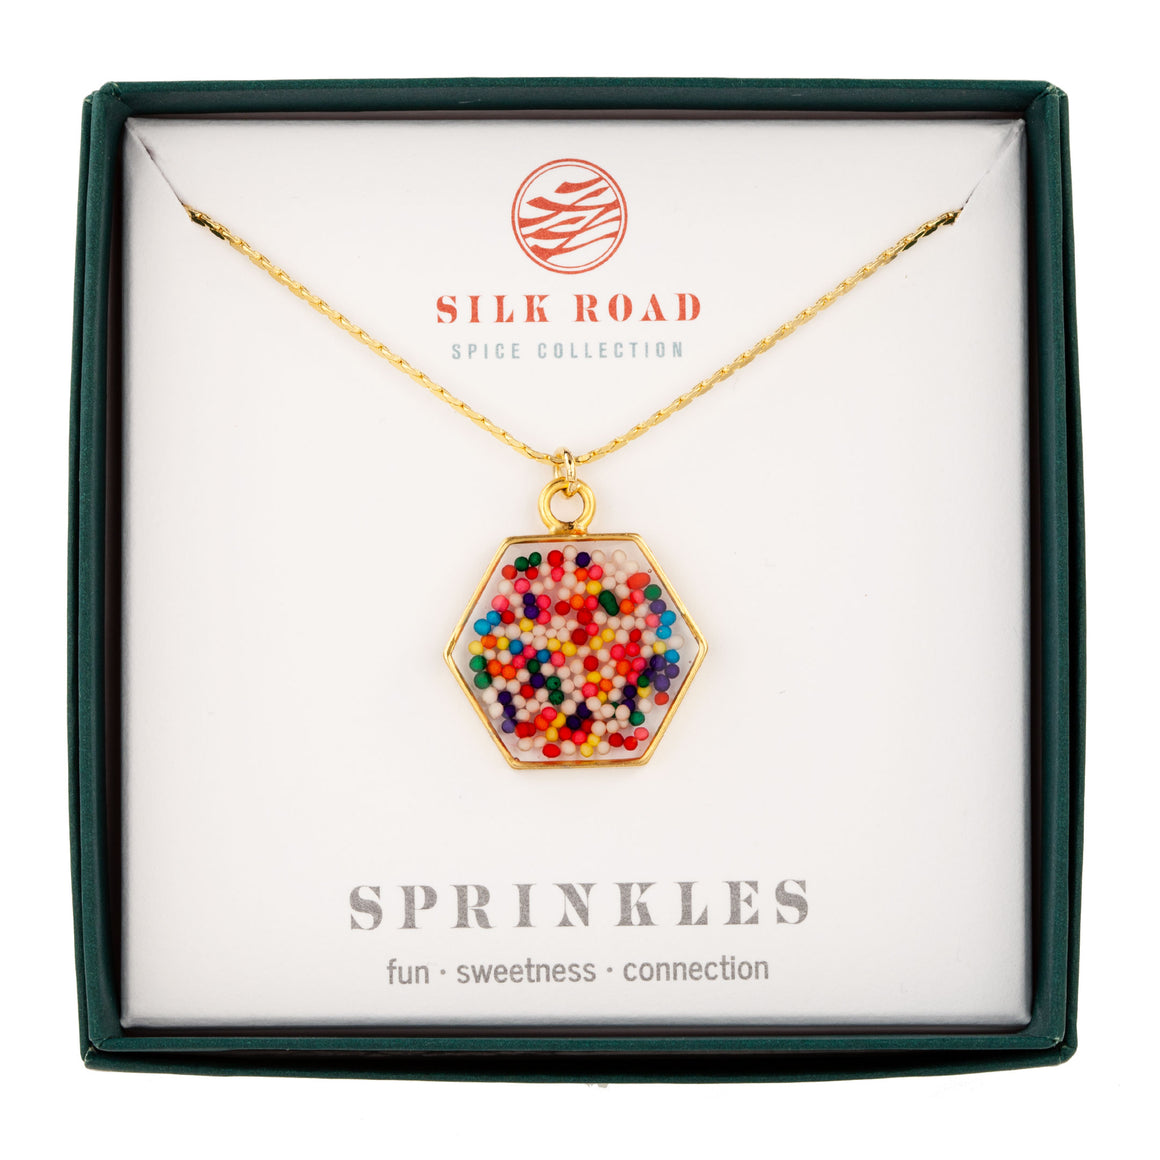 Sprinkles | Large Hexagonal Necklace